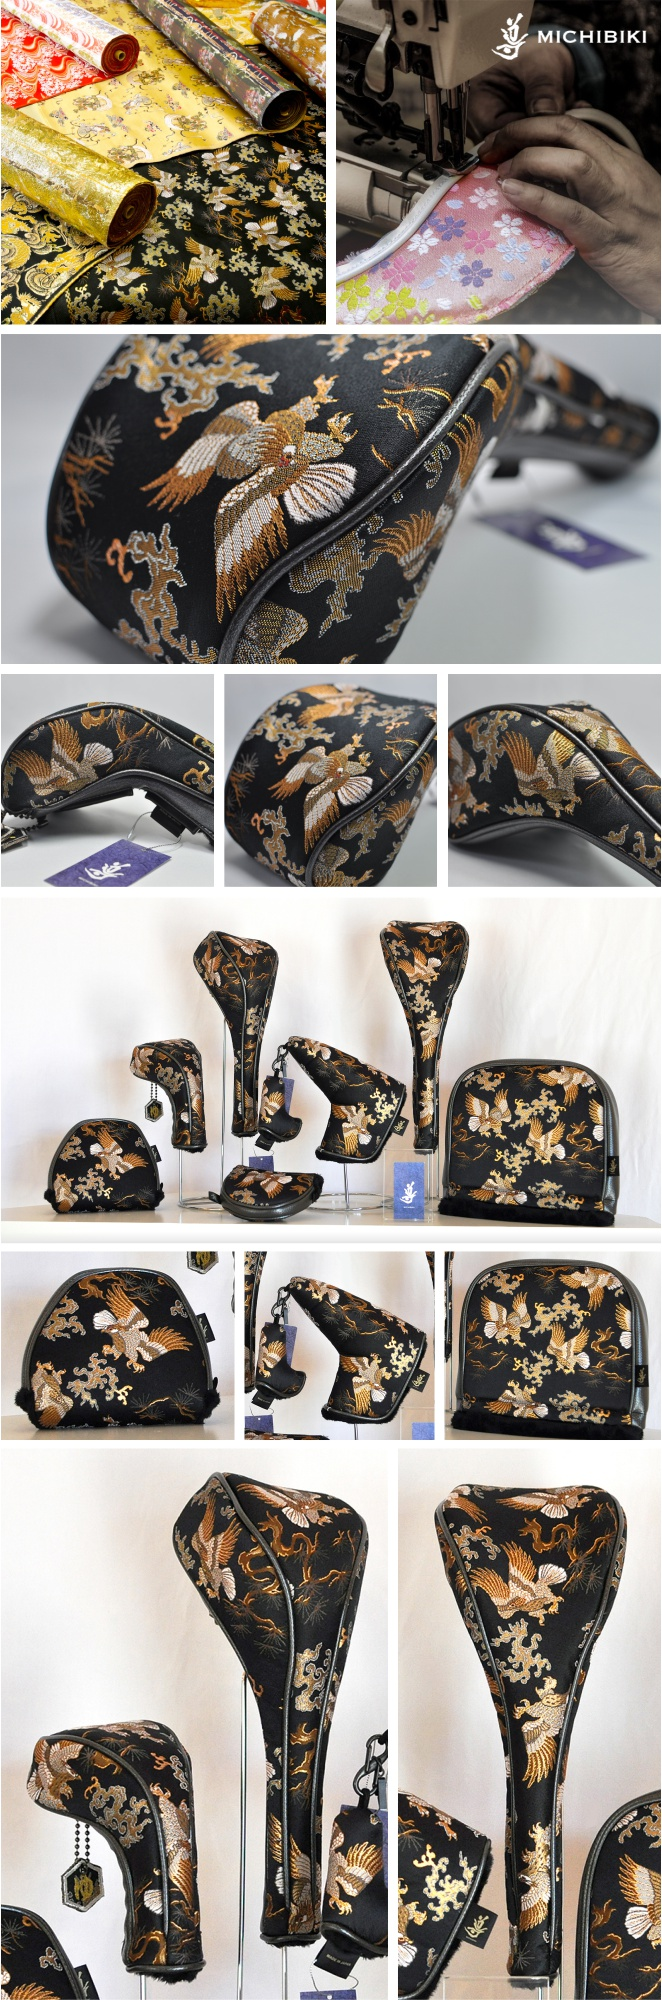 Michibiki Brocade Hawk Black Head Cover